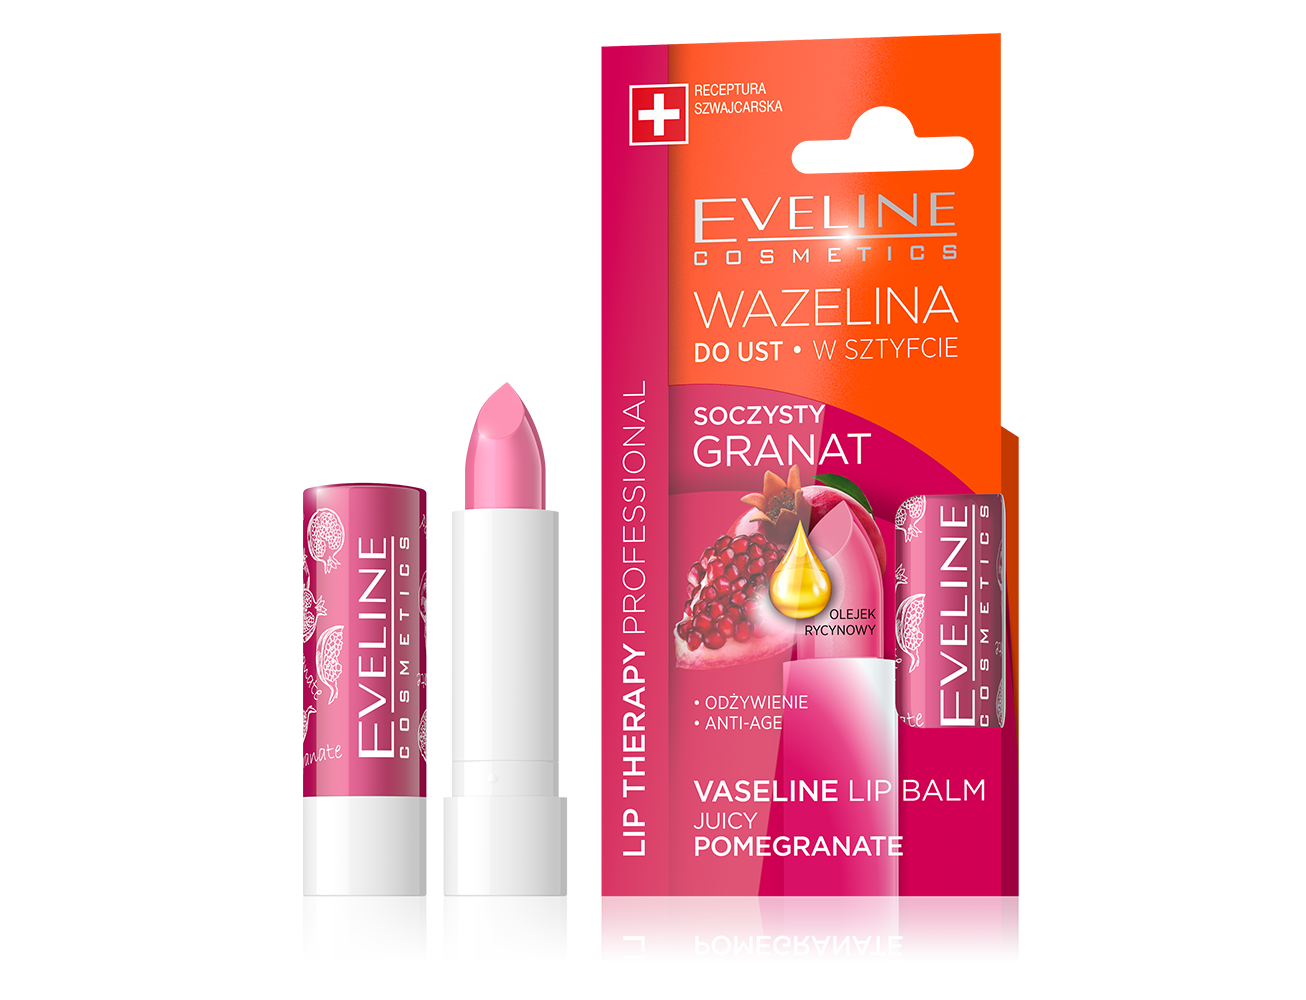 Juicy Pomegranate Vaseline Lipstick Balm Eveline Cosmetics Lip Therapy Rosy Lips Fruity Stick Intensely Cares And Greases Delicate Skin Eliminating Any Irritation Overdryness Roughness